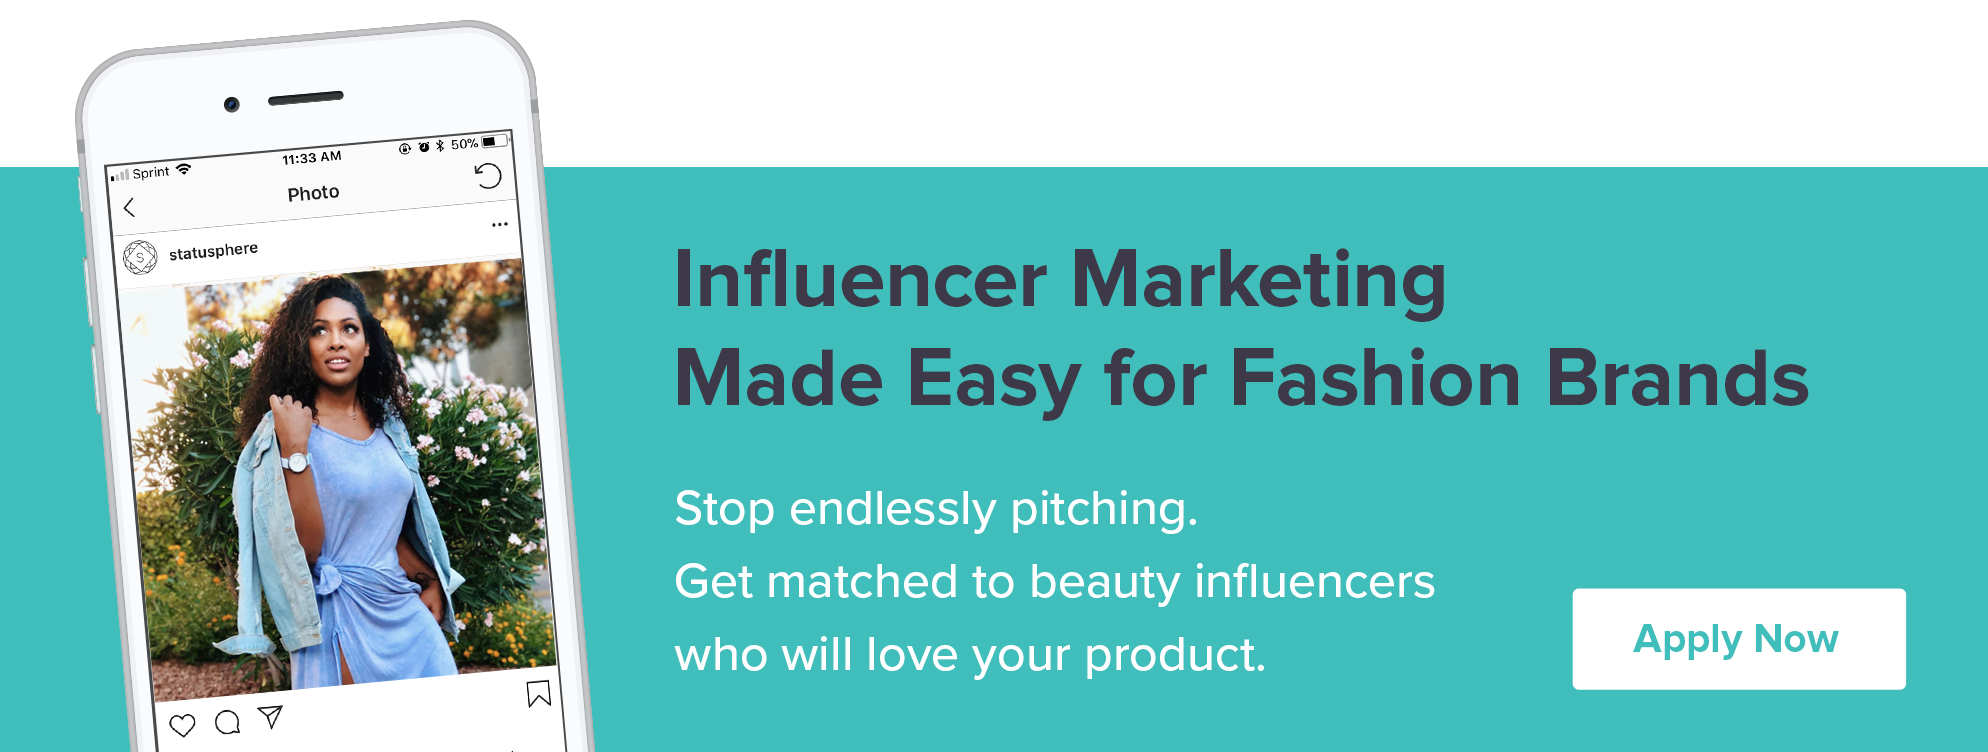 Fashion Influencer Marketing